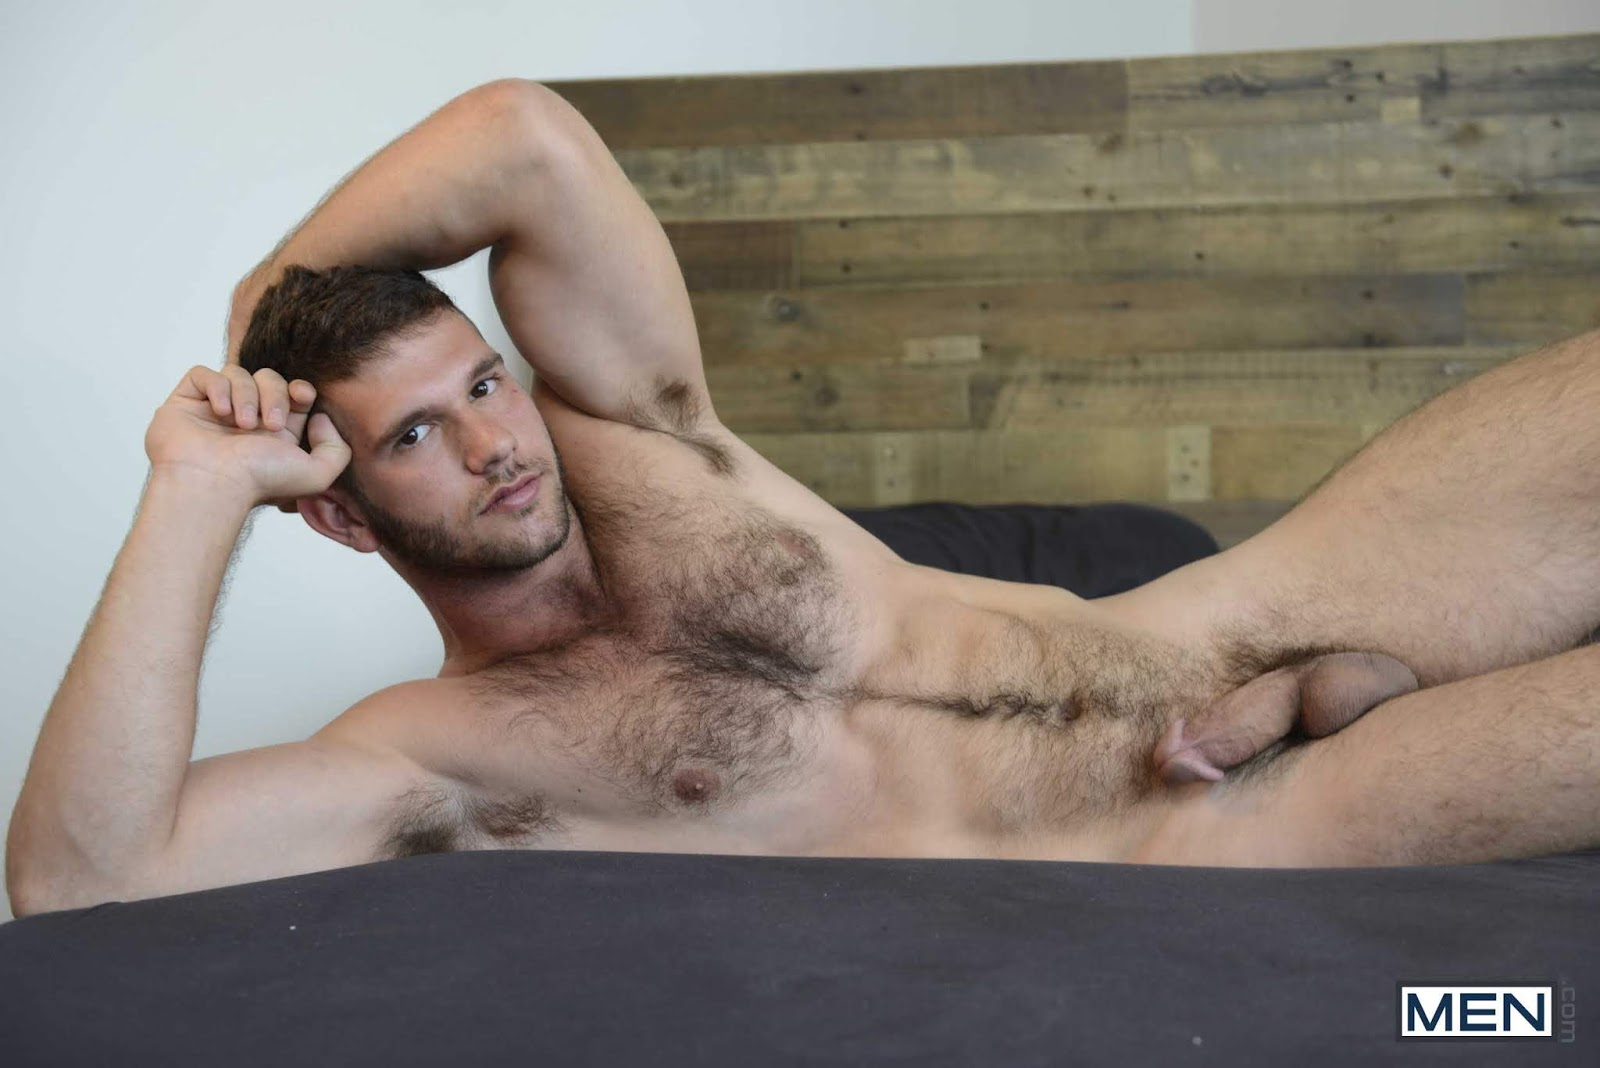 Hot nude gay man with hairy body